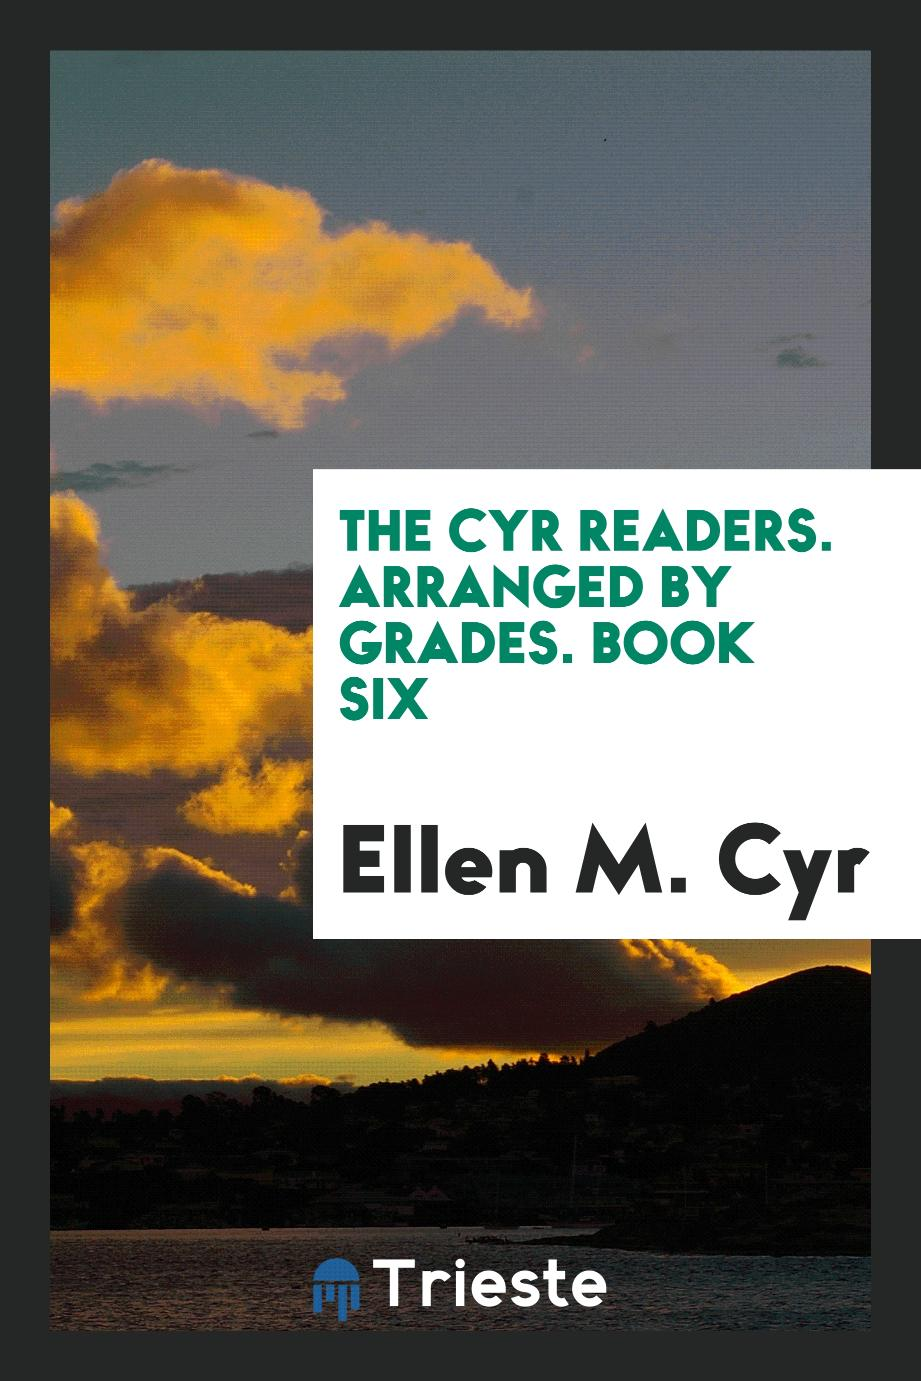 The Cyr Readers. Arranged by Grades. Book Six